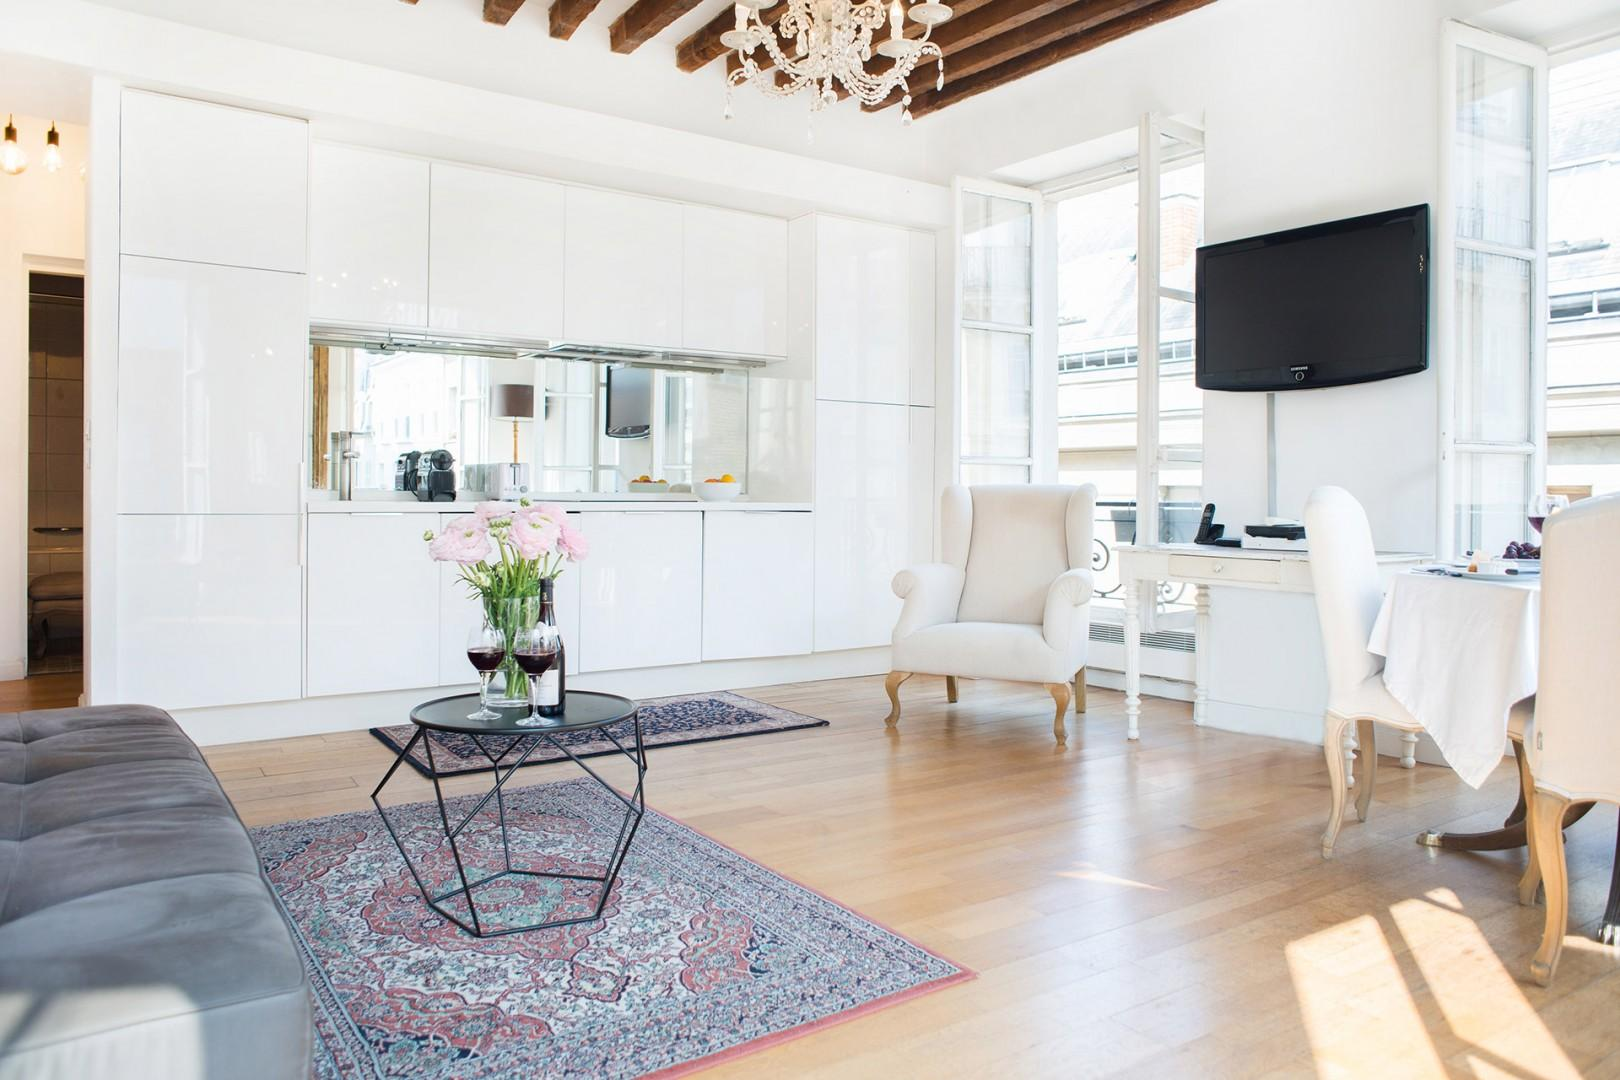 White decor, high ceilings, and bright windows create a spacious atmosphere.